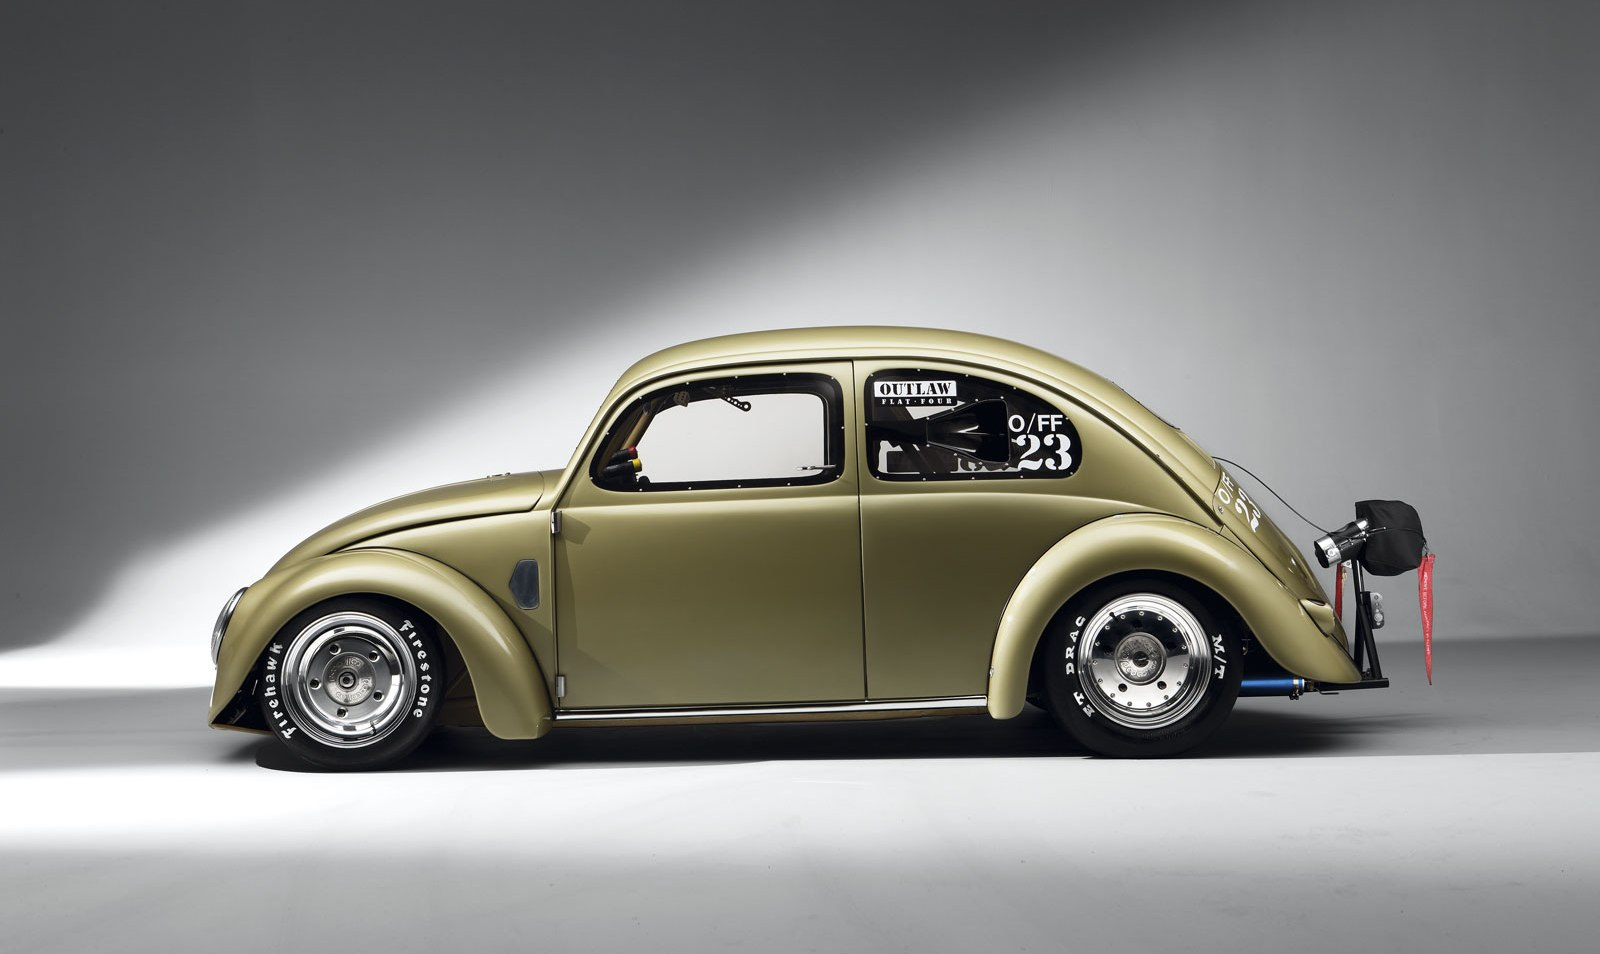 VW Beetle Wallpaper - WallpaperSafari